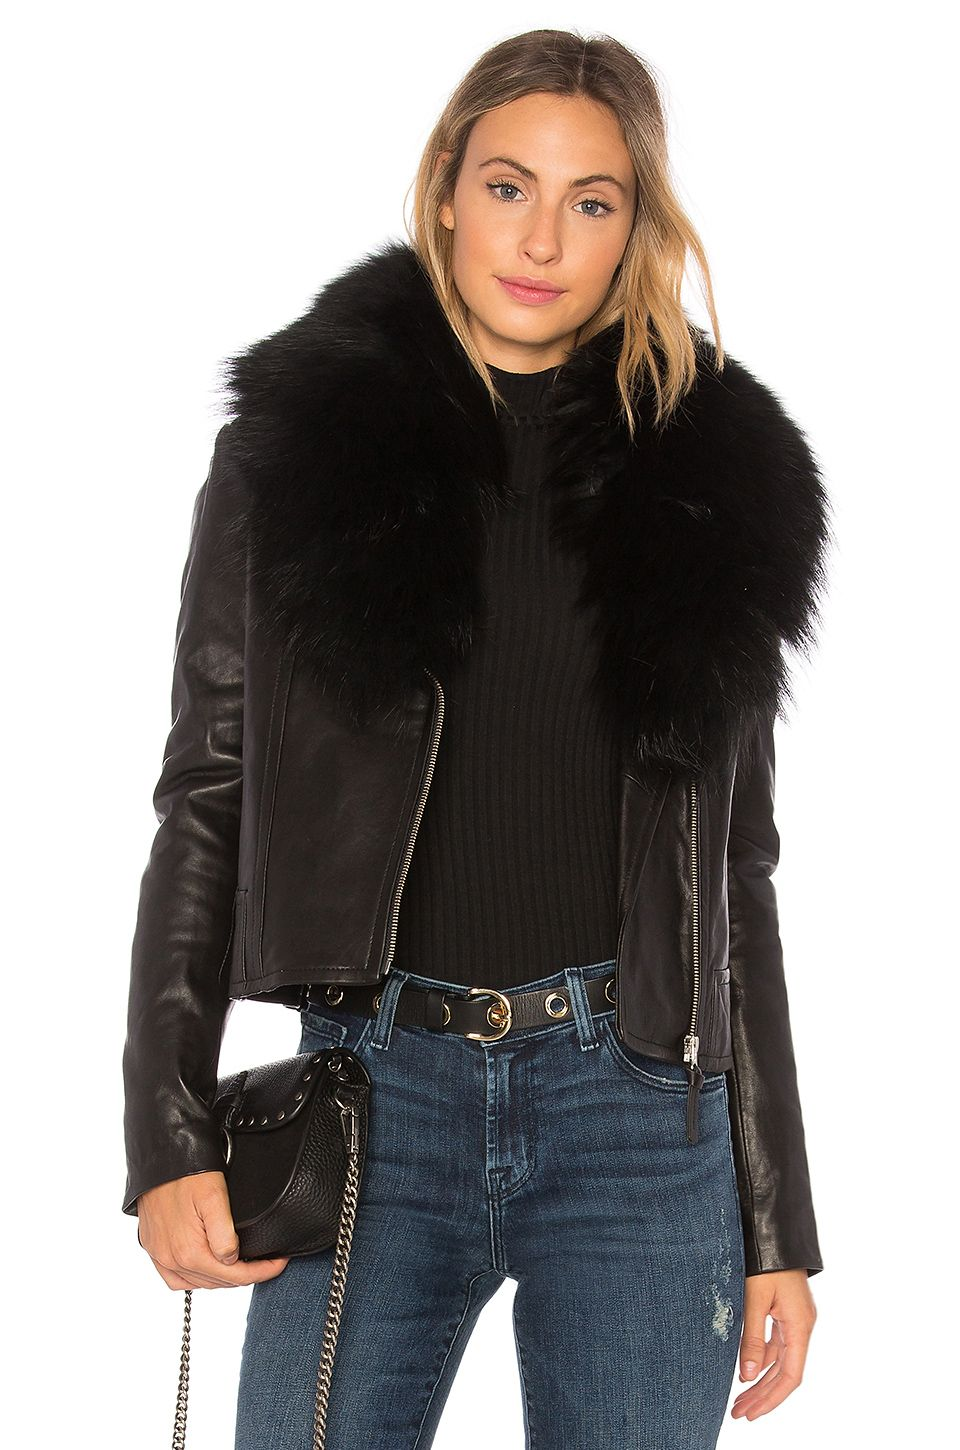 Mackage Yoana Leather Jacket With Raccoon Fur in Black